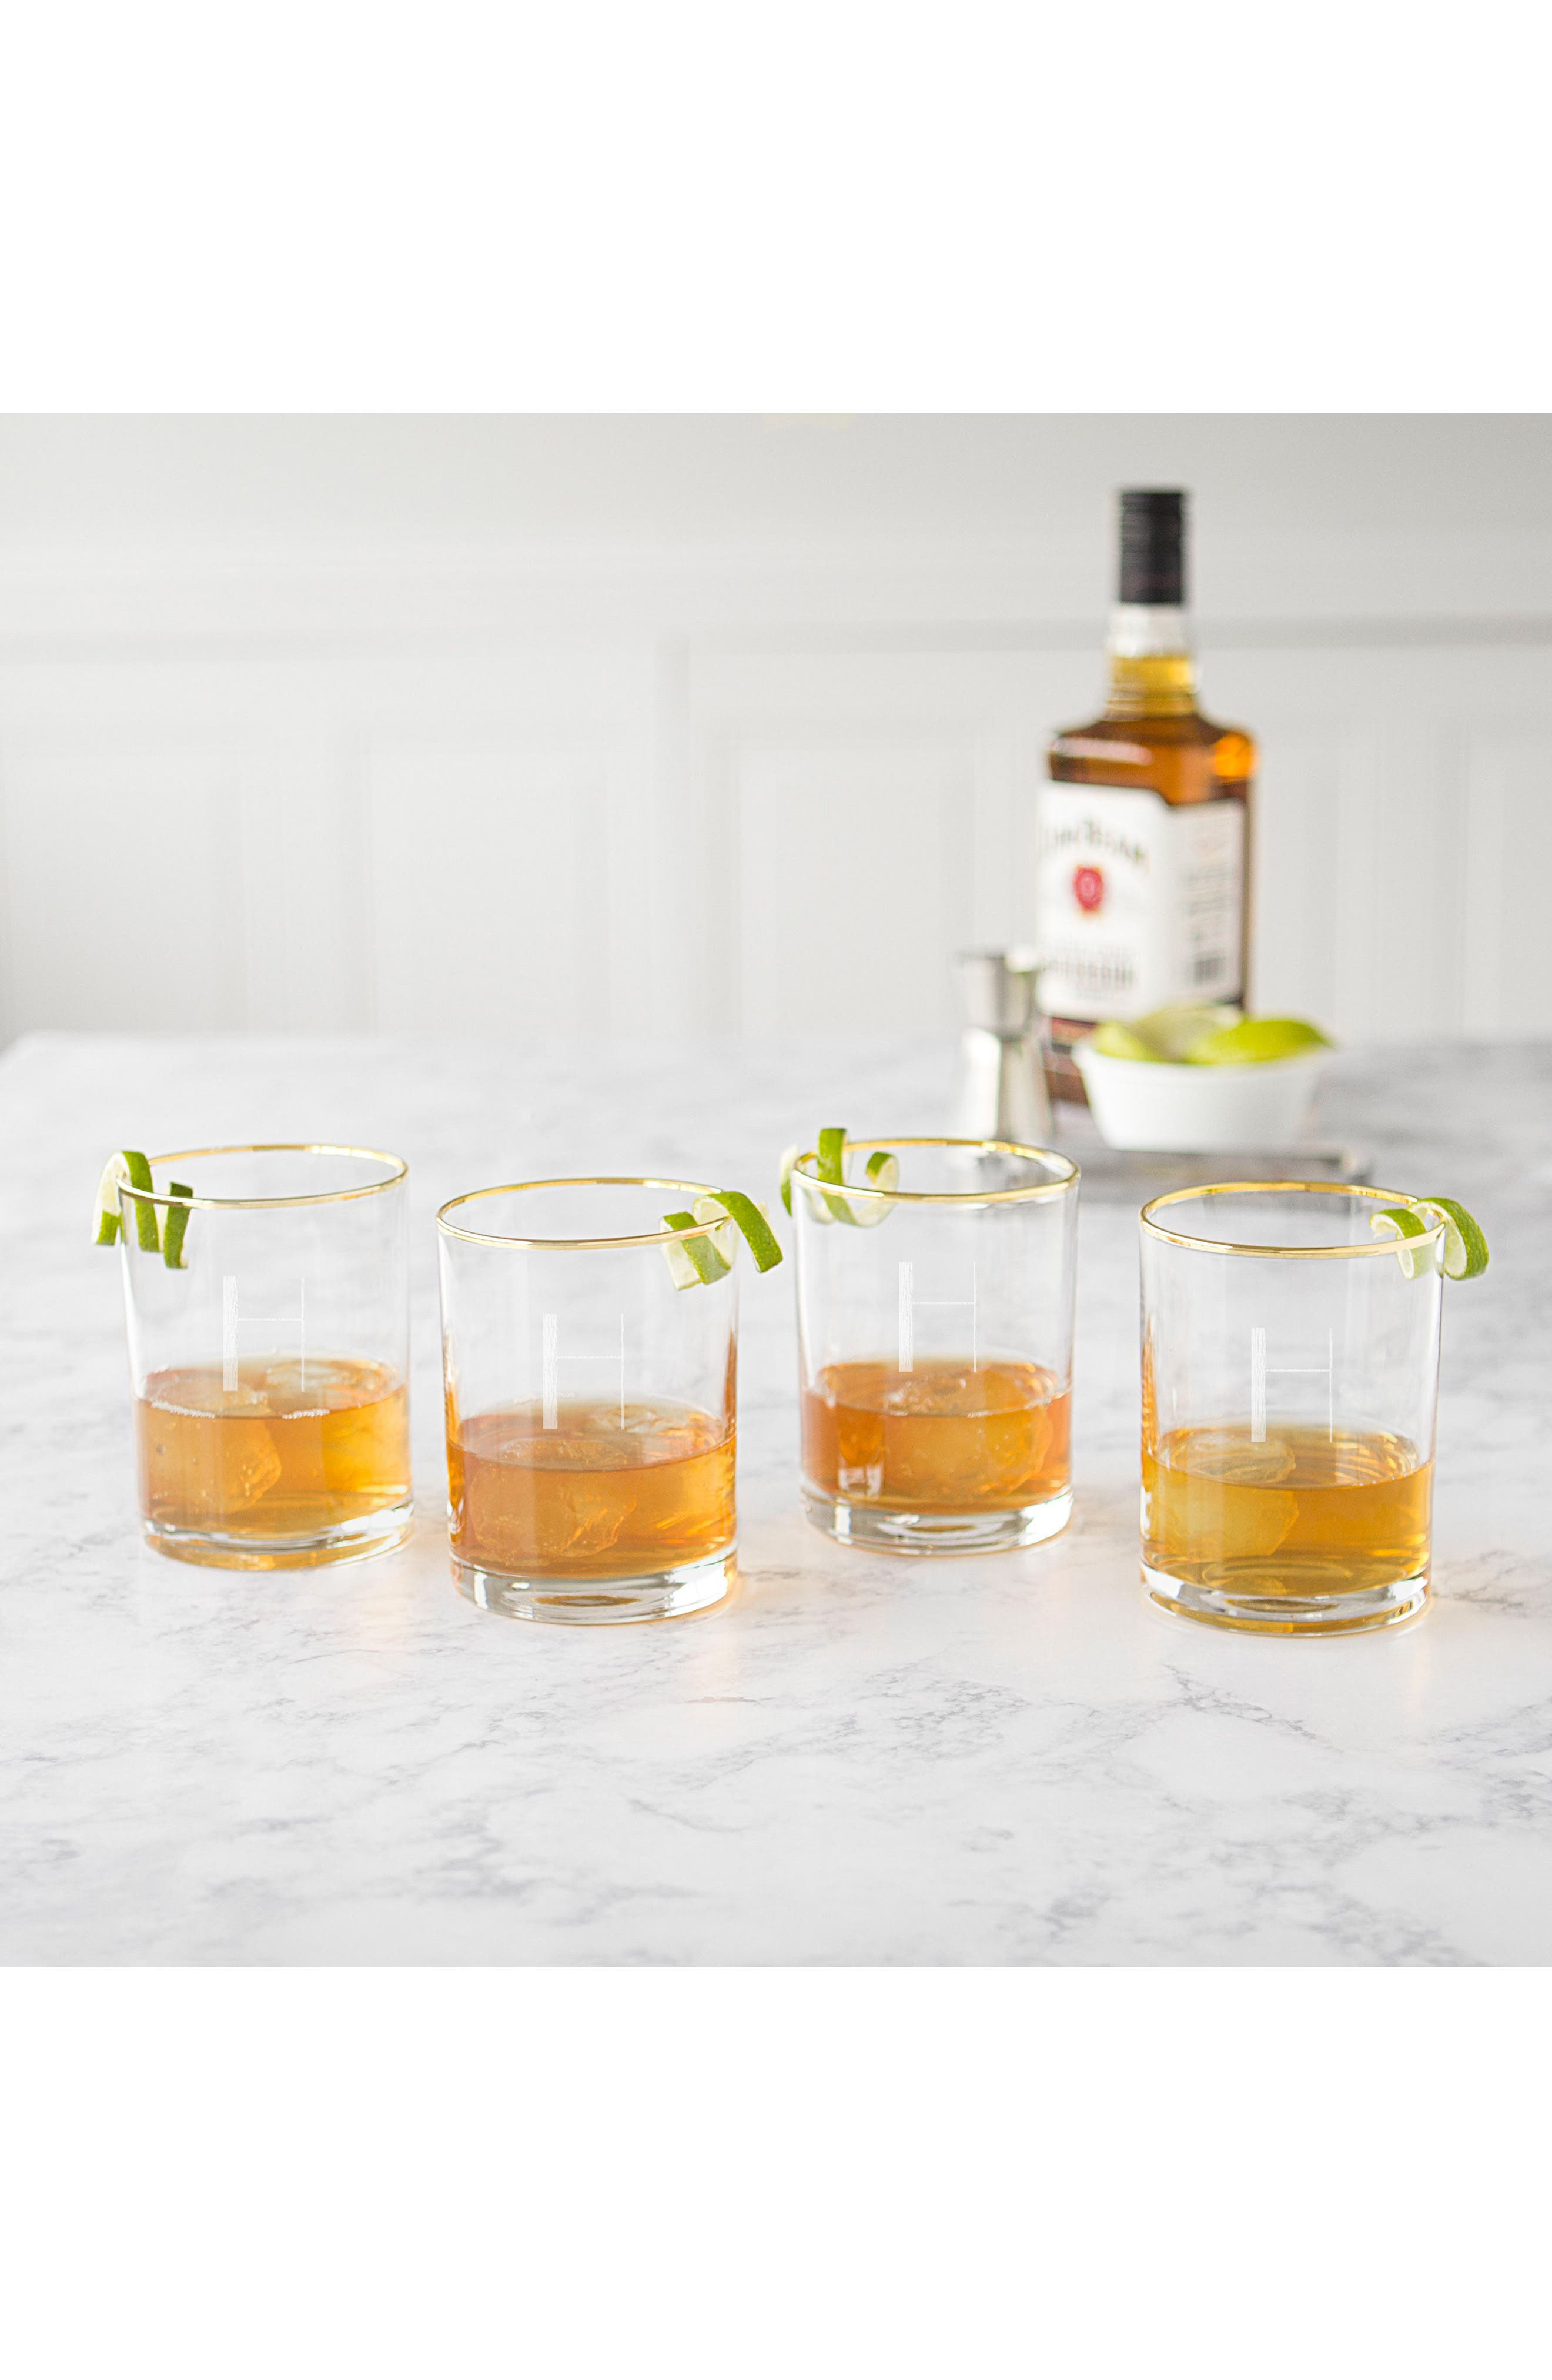 Monogram Set of 4 Double Old Fashioned Glasses,                             Alternate thumbnail 31, color,